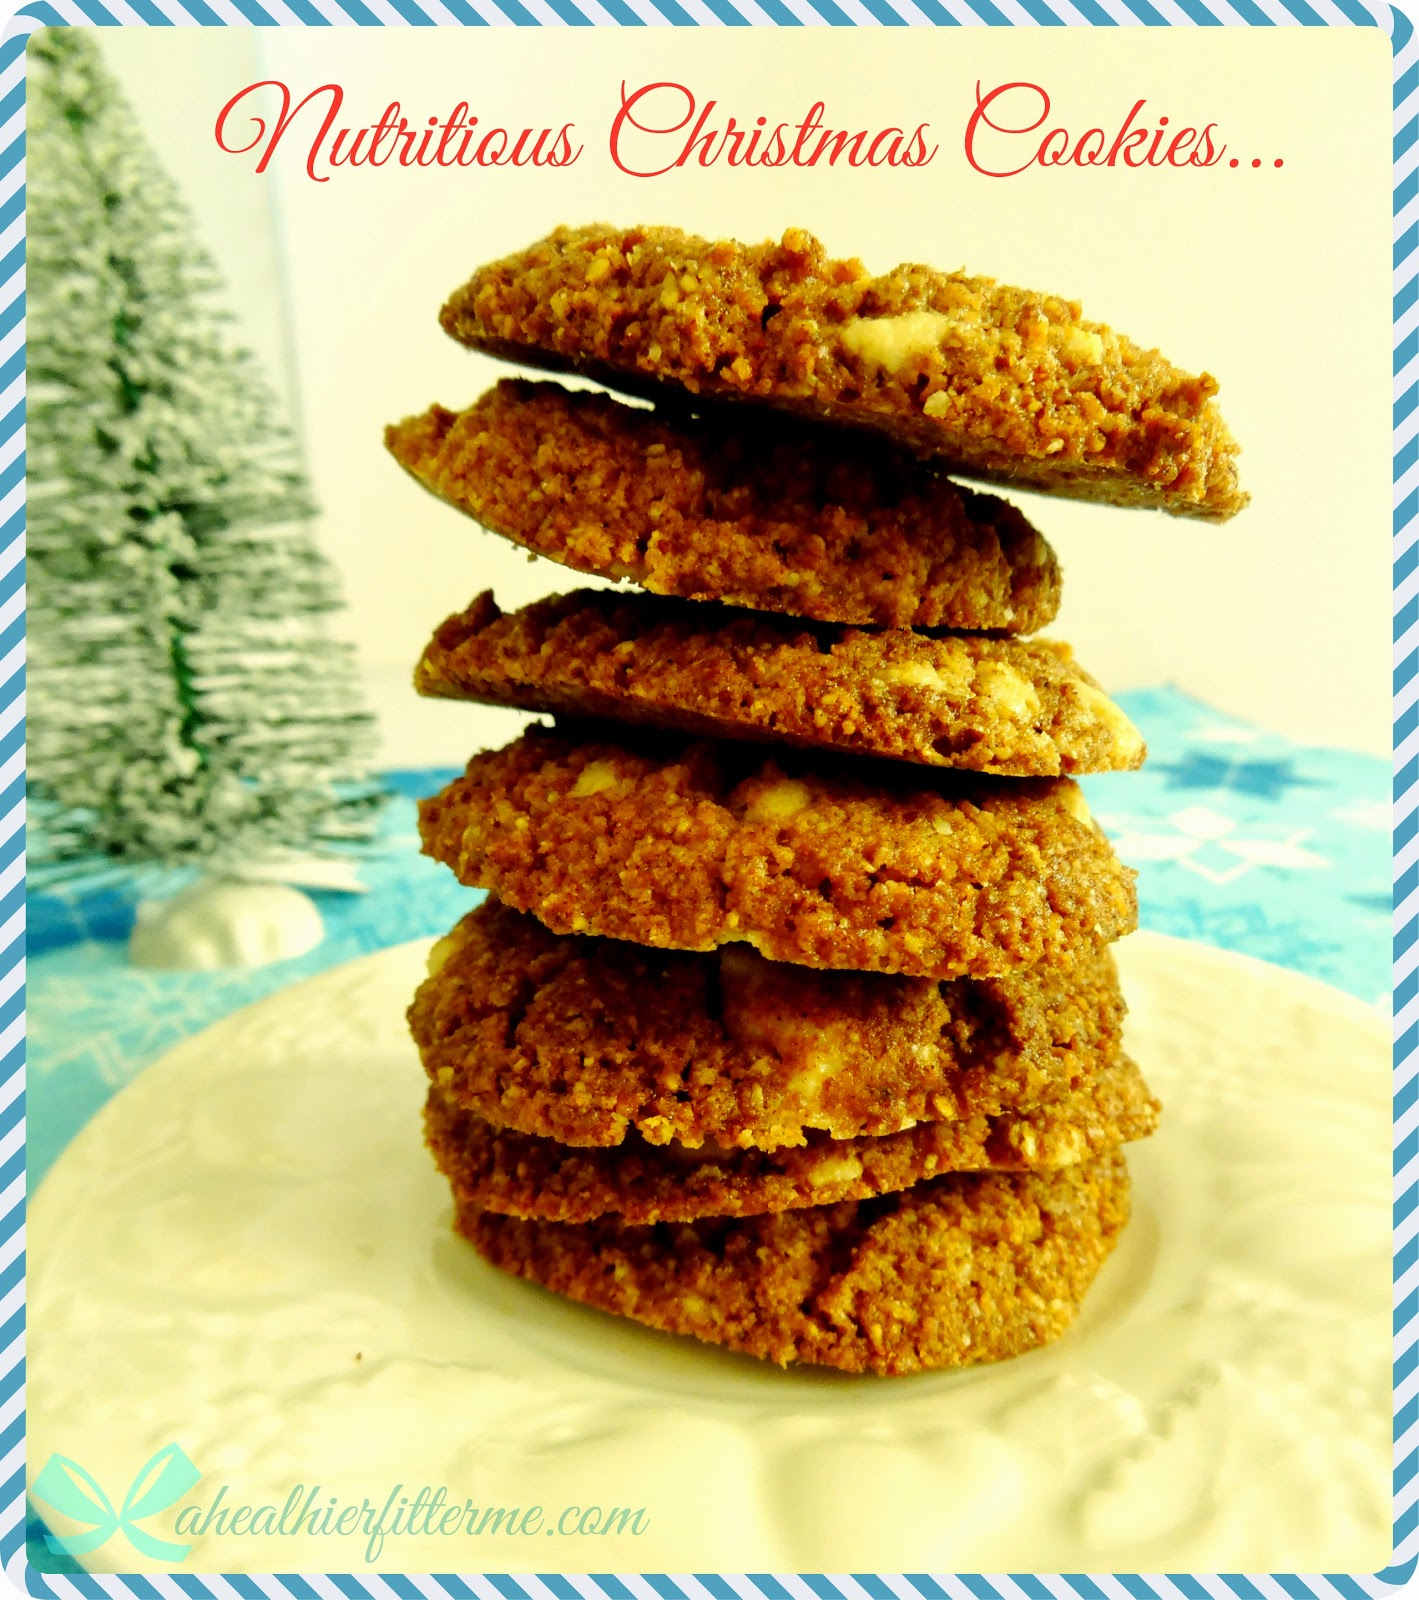 http://www.ahealthierfitterme.com/2014/12/almond-sesame-christmas-cookies-paleo.html